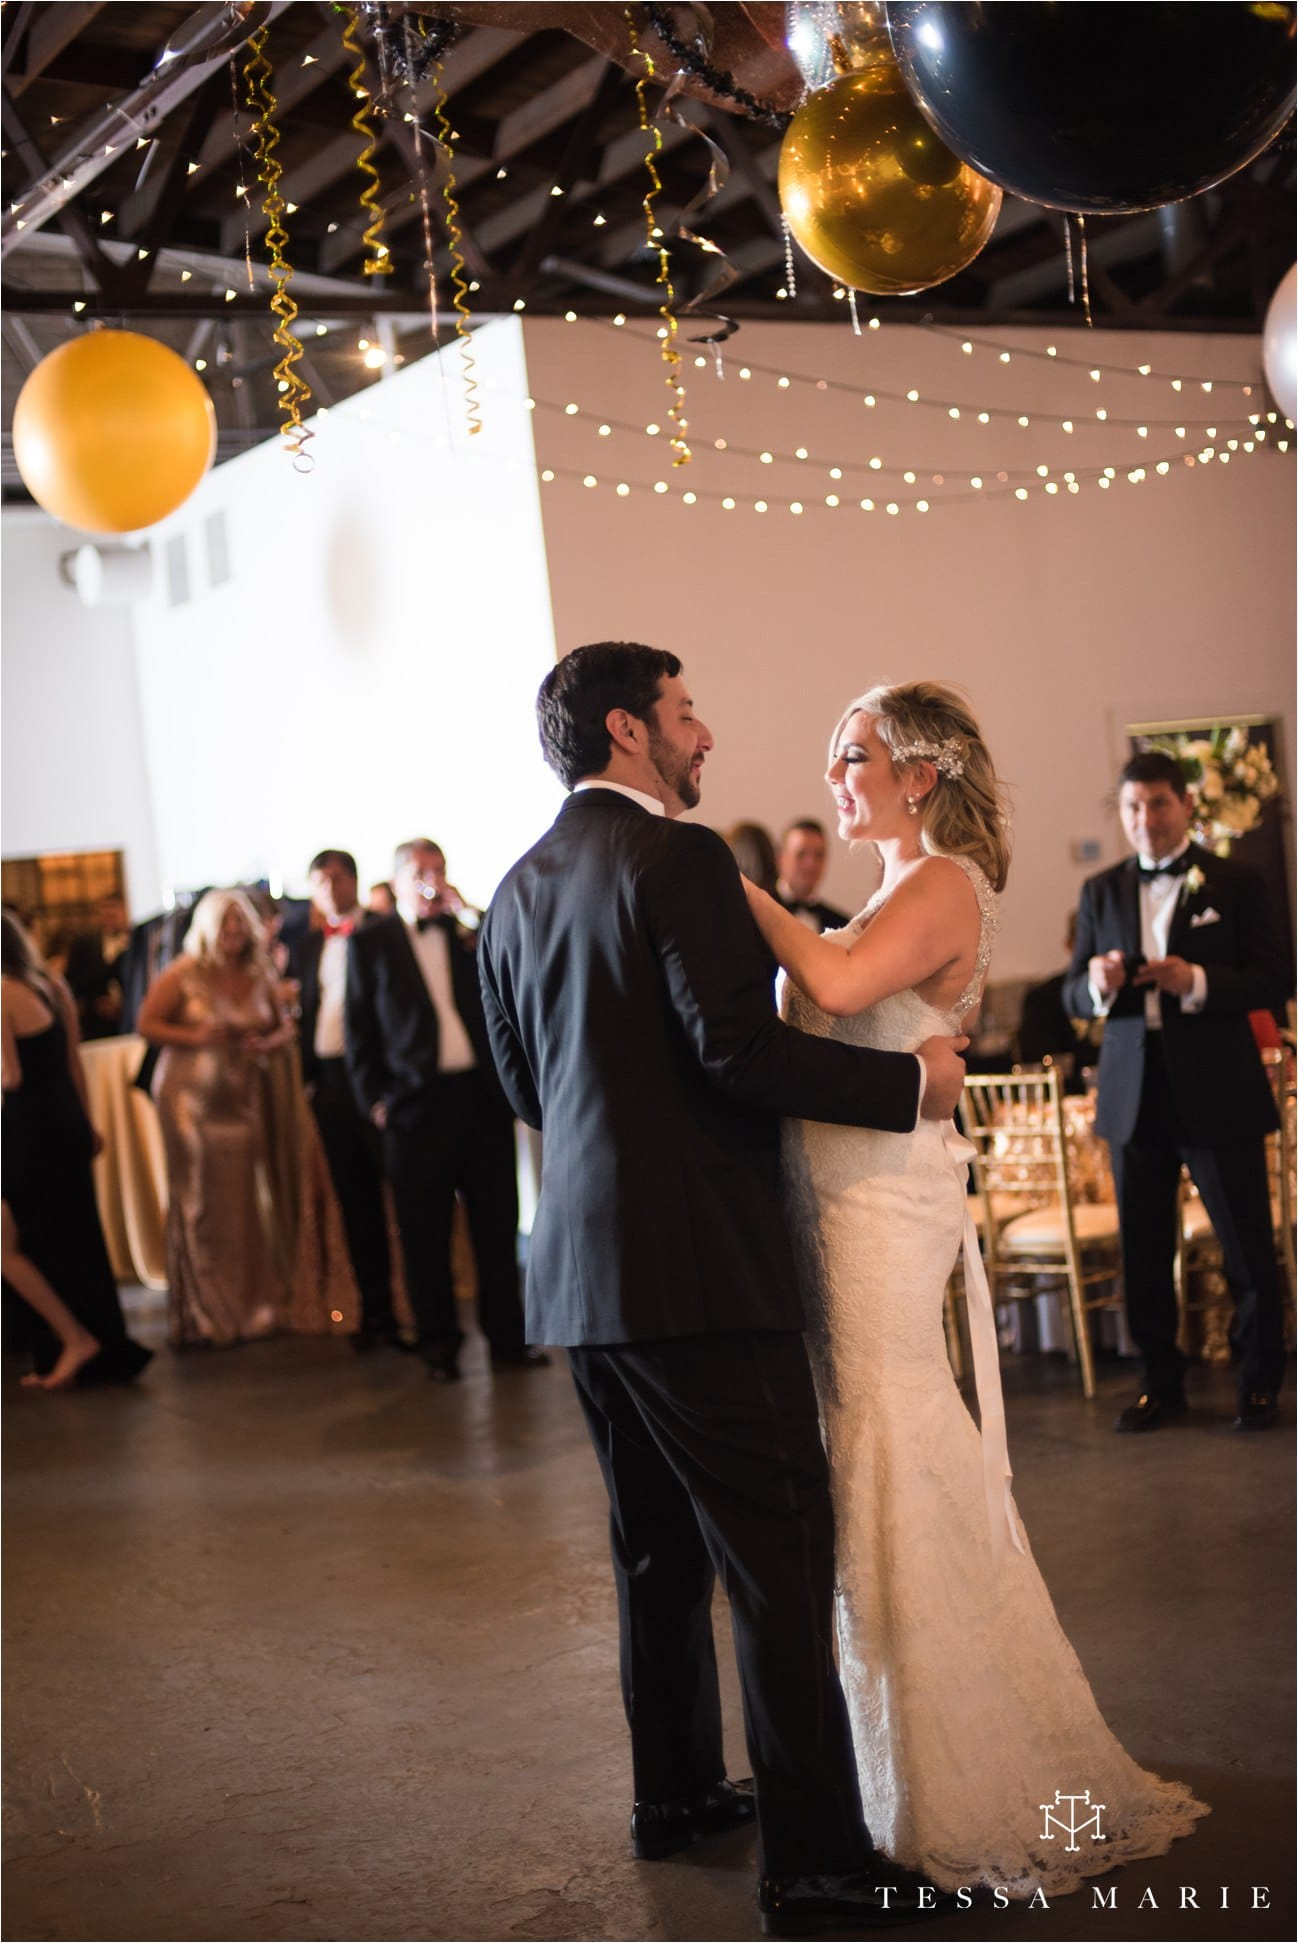 tessa_marie_brickyard_marietta_new_years_wedding_pictures_candid_emotional_wedding_portraits_0134